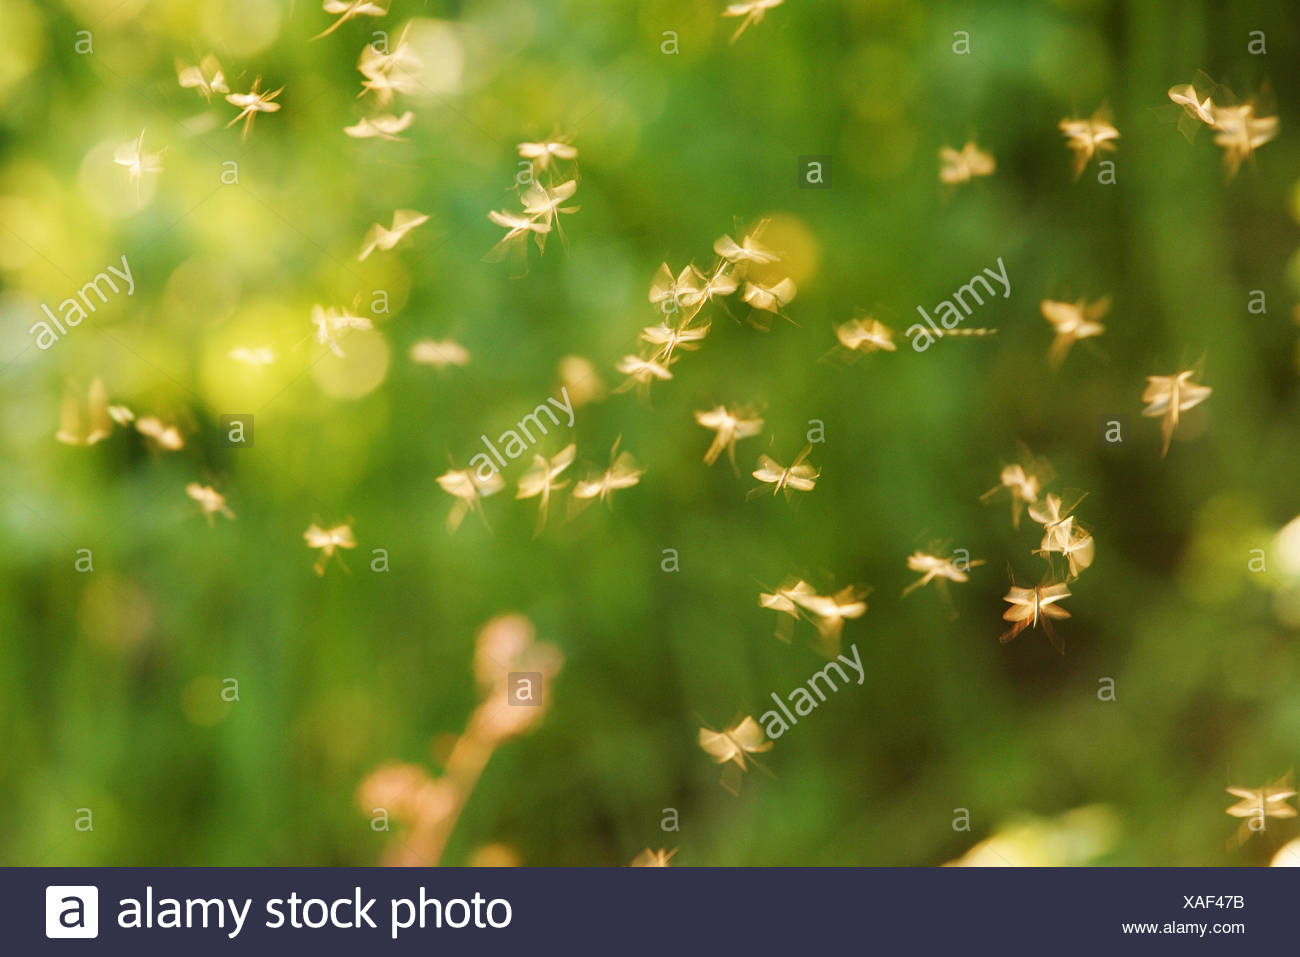 Swarm of mosquitoes, back light, insects, Stechmücken, mosquitoes, mosquitoes, Gelsen, Culicidae, bloodsuckers, vectors, pests, small, tiny, many, light weight, ease, fleetingness, whirr, hum, fly tiresomely, nature, animals, back light - Stock Image